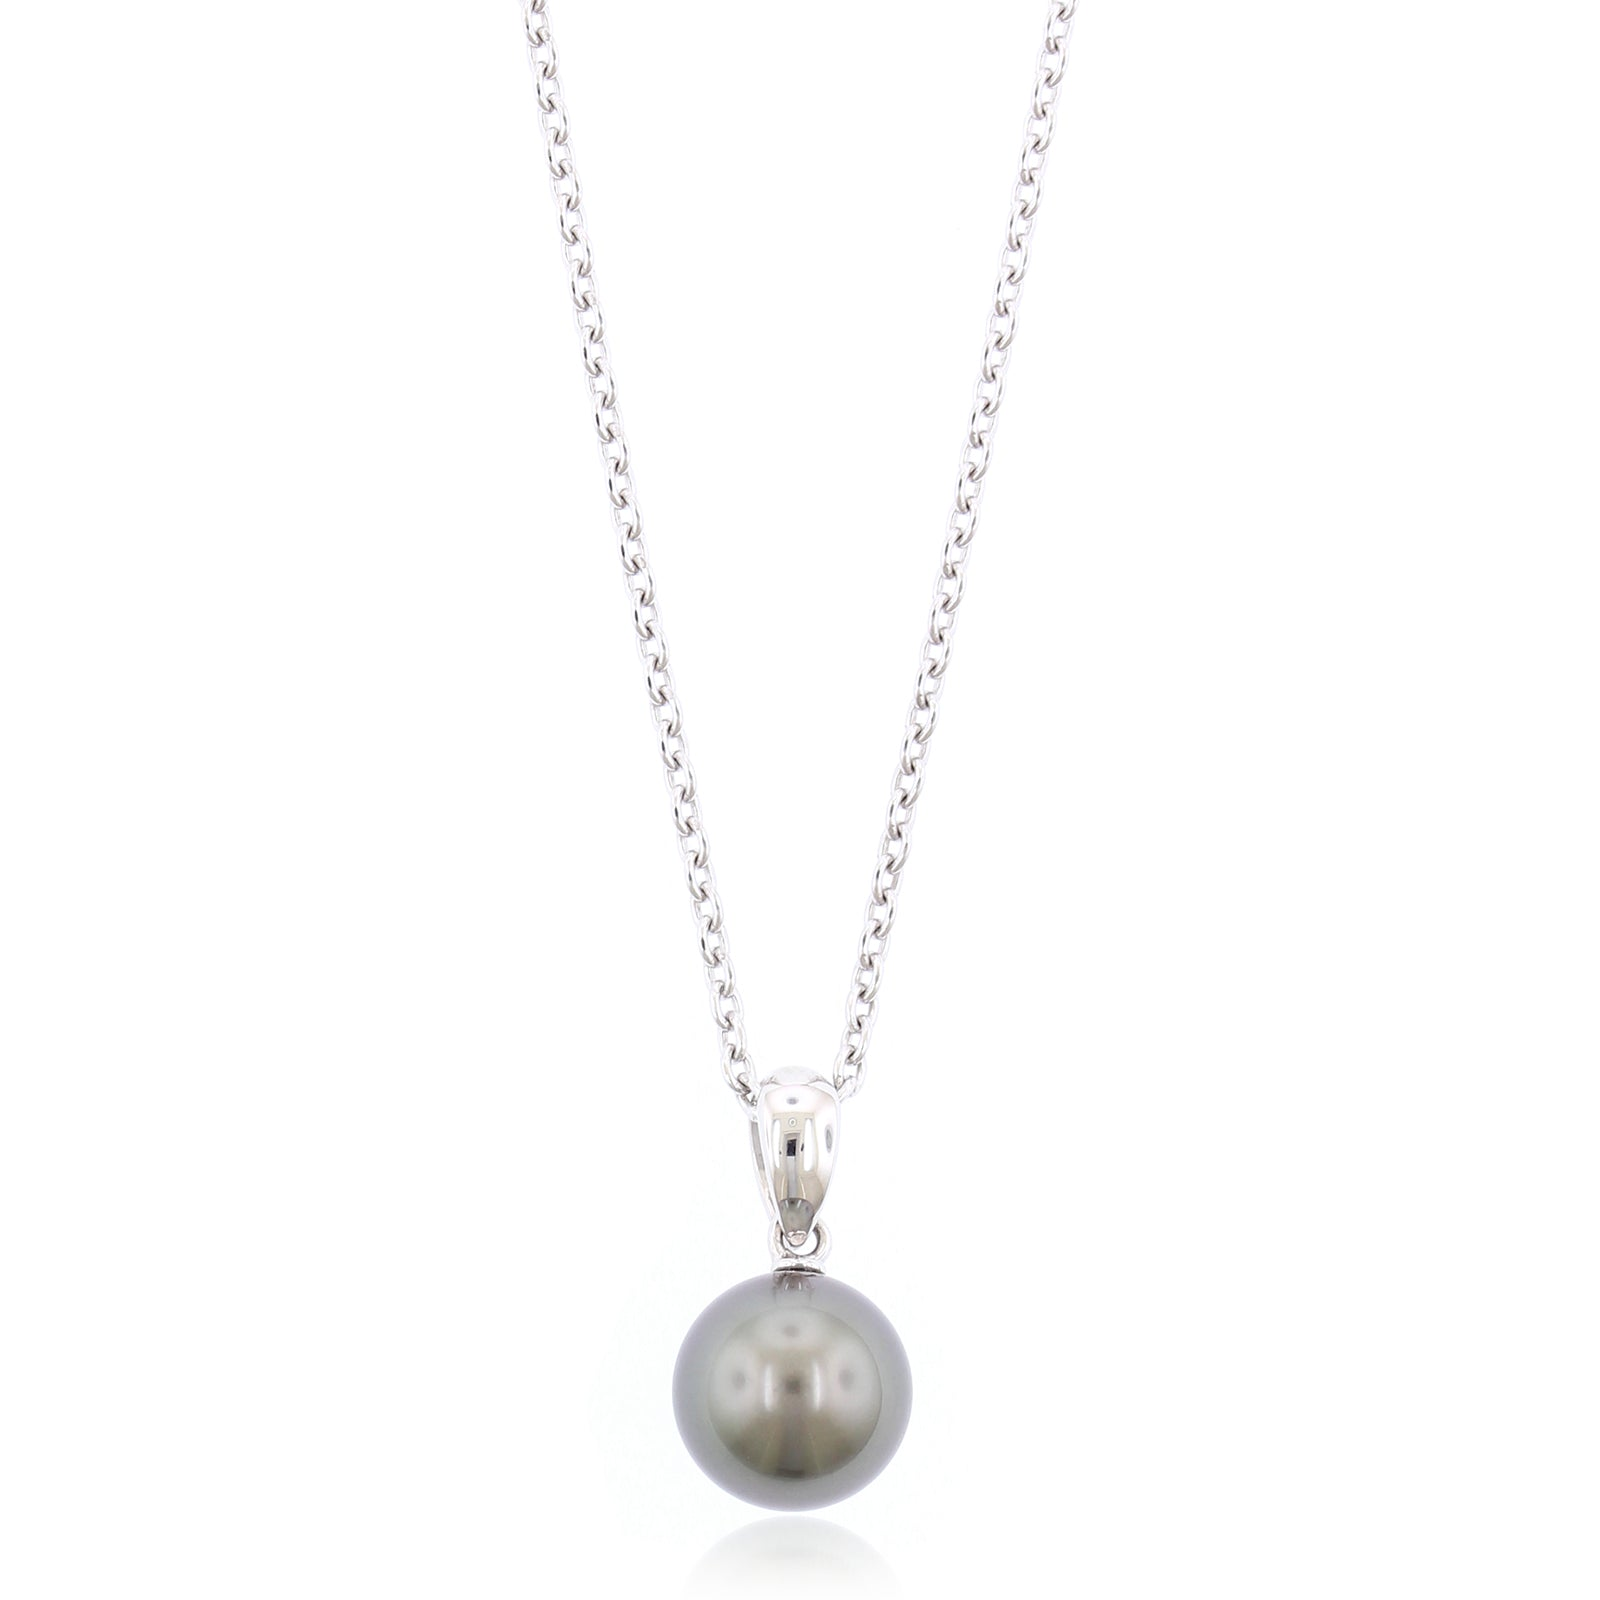 8mm Black South Sea Pearl Pendant in 18K White Gold